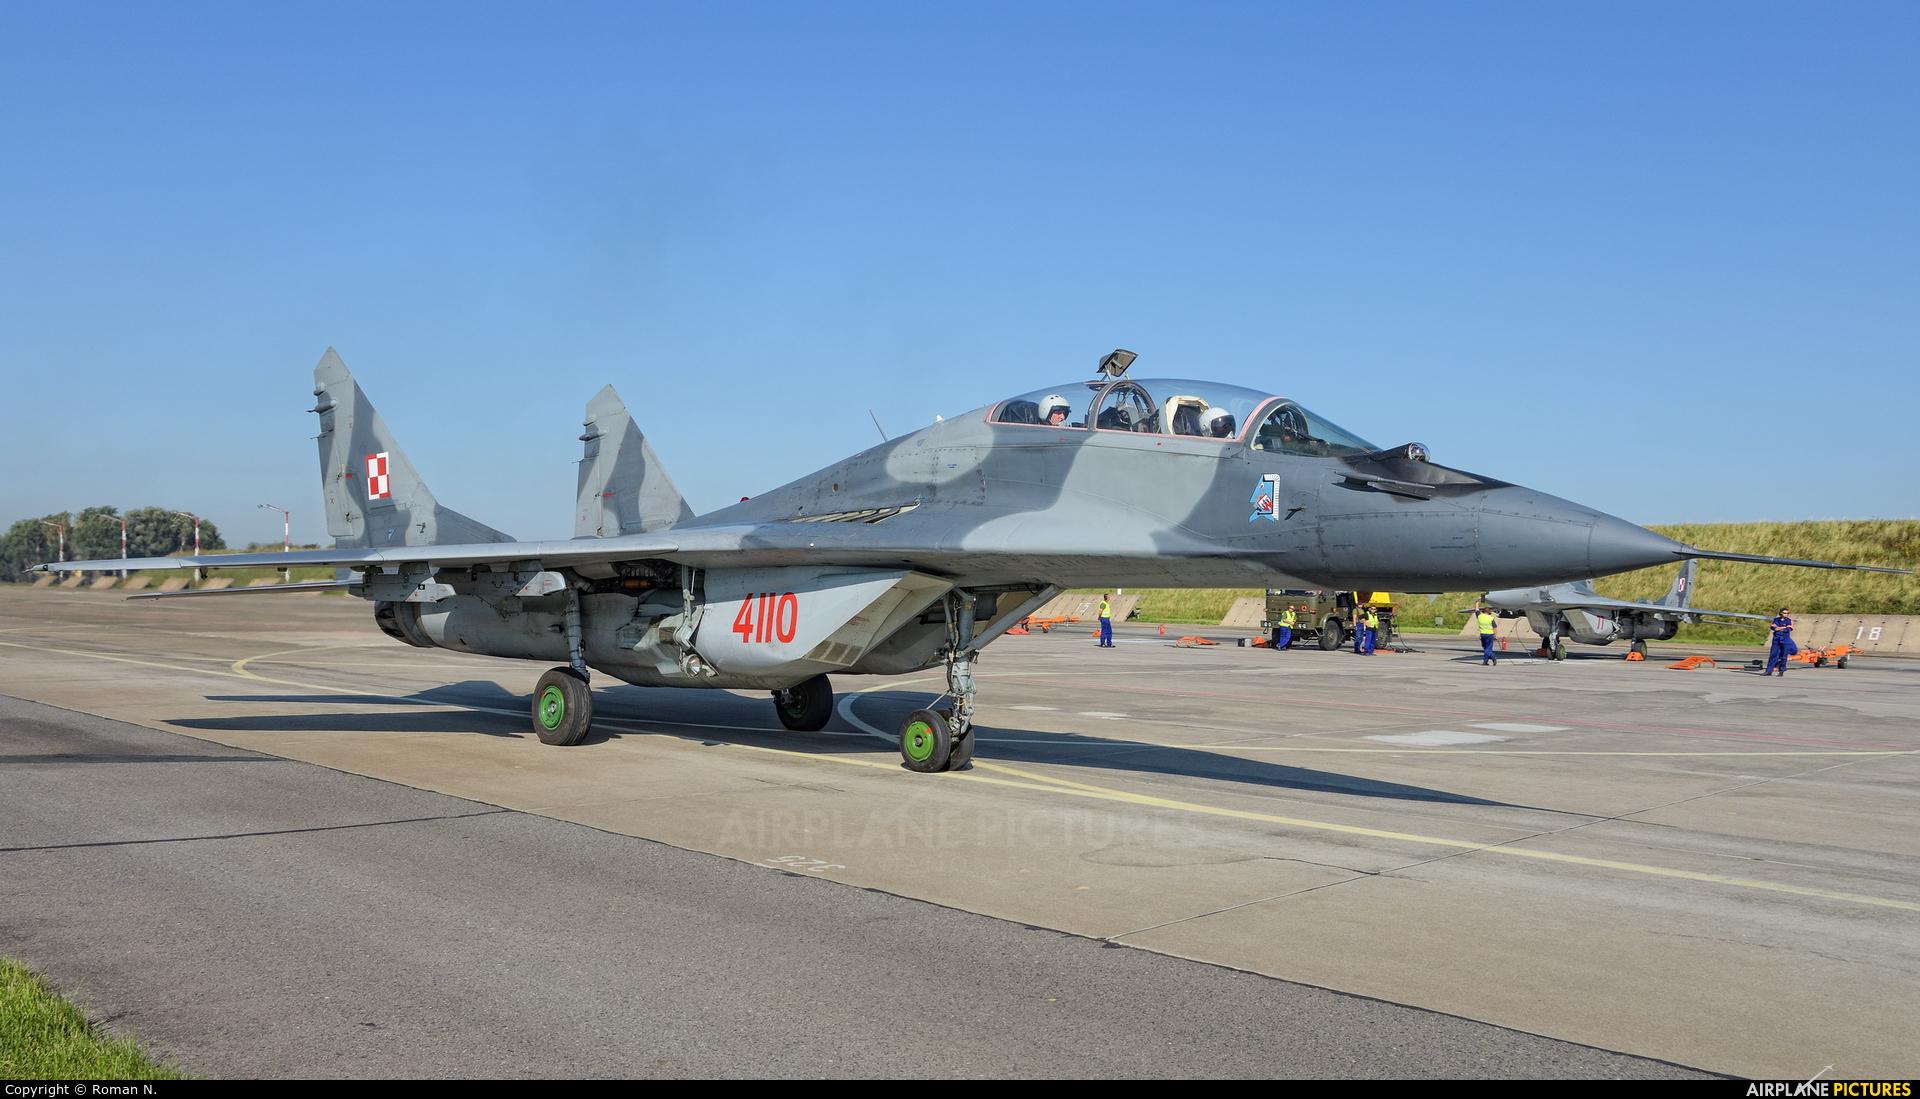 Poland - Air Force 4110 aircraft at Malbork